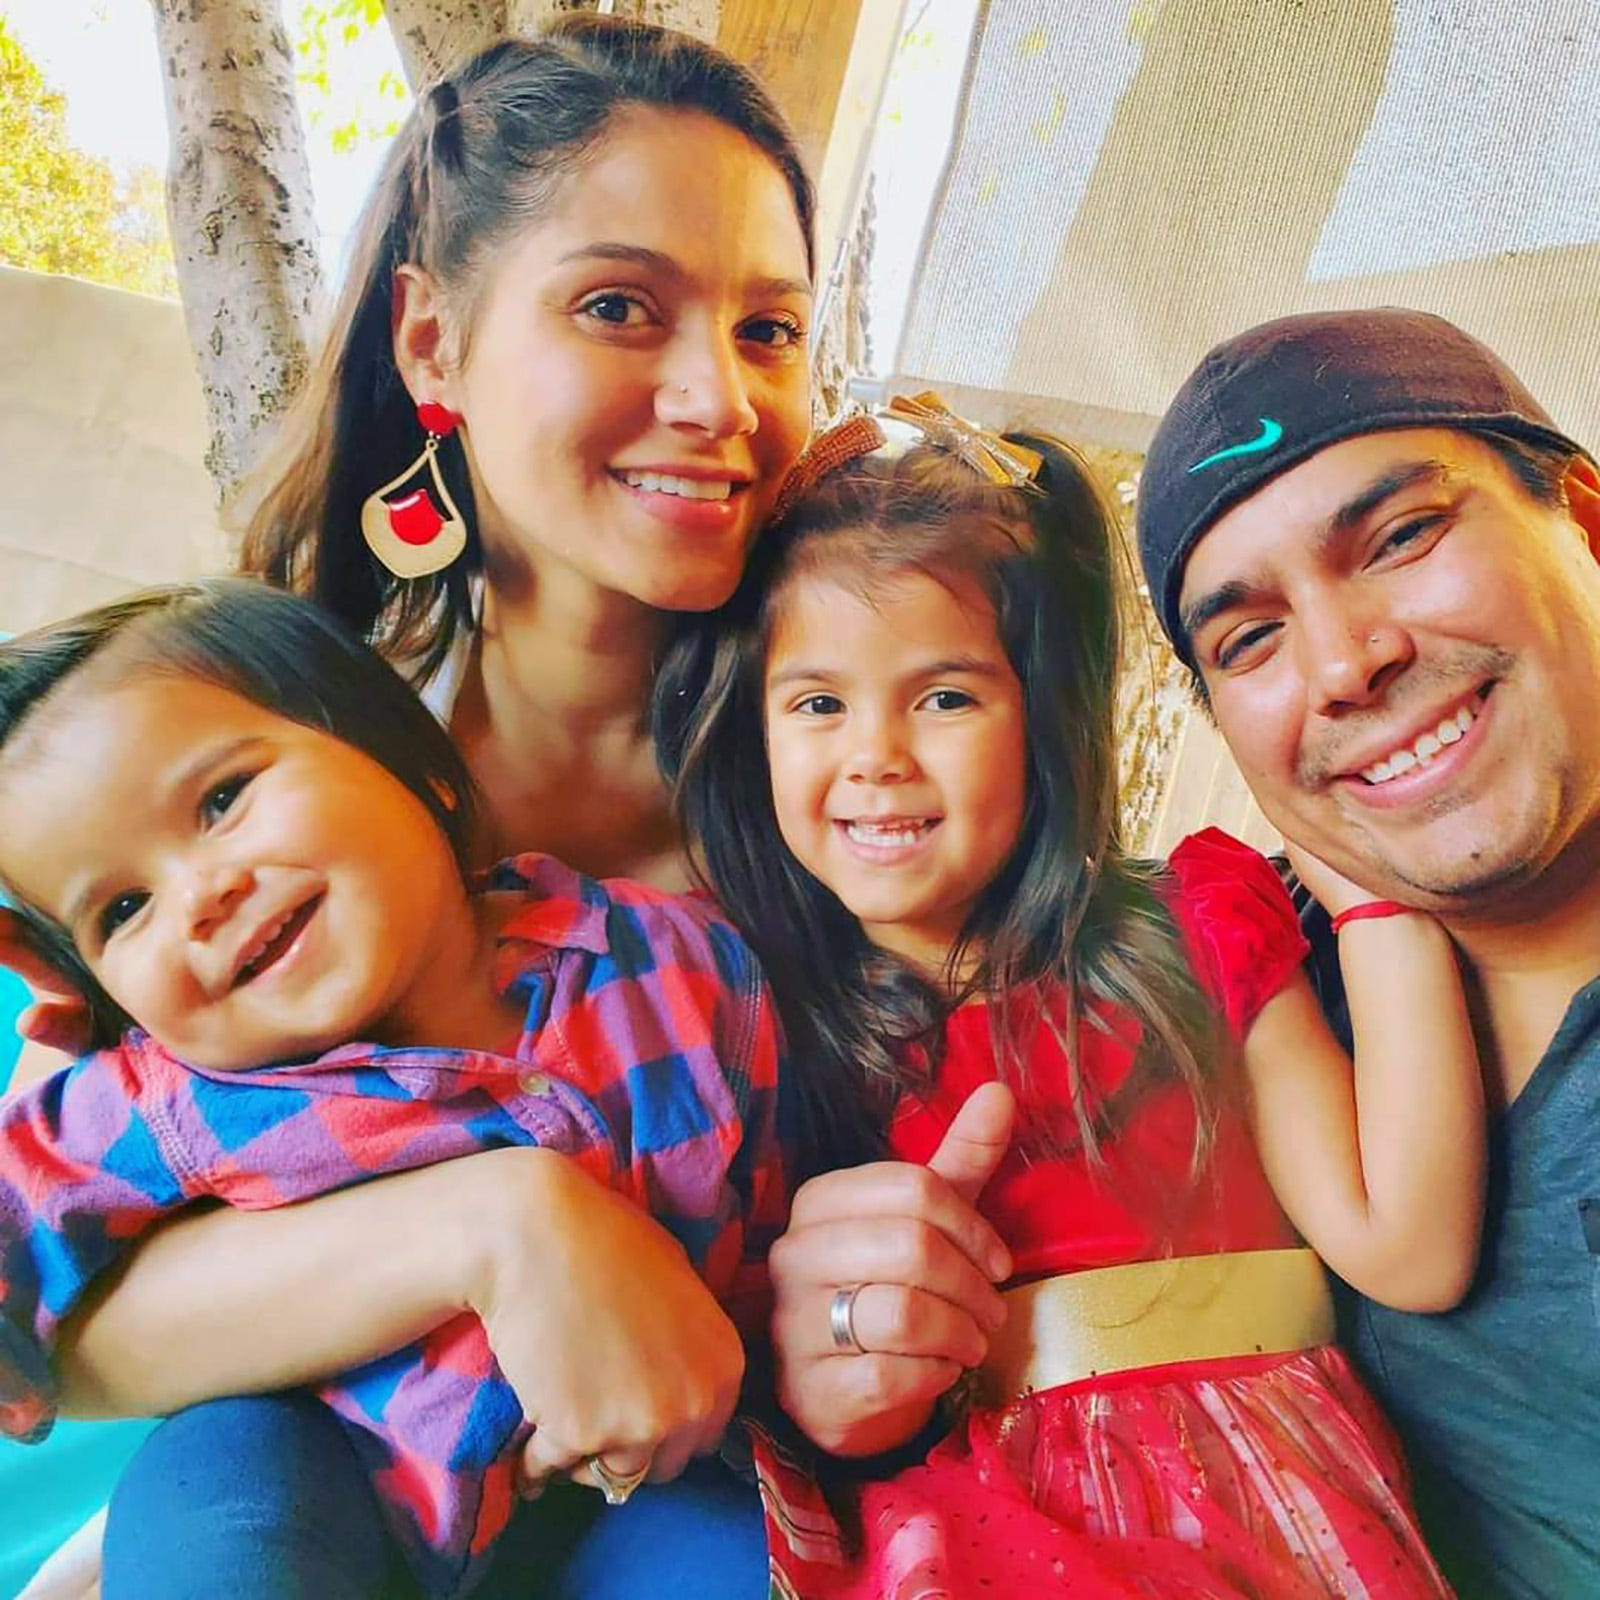 Dayana Costa and her husband, Angelo Fuentes, with their children, Thiago and Barbara.